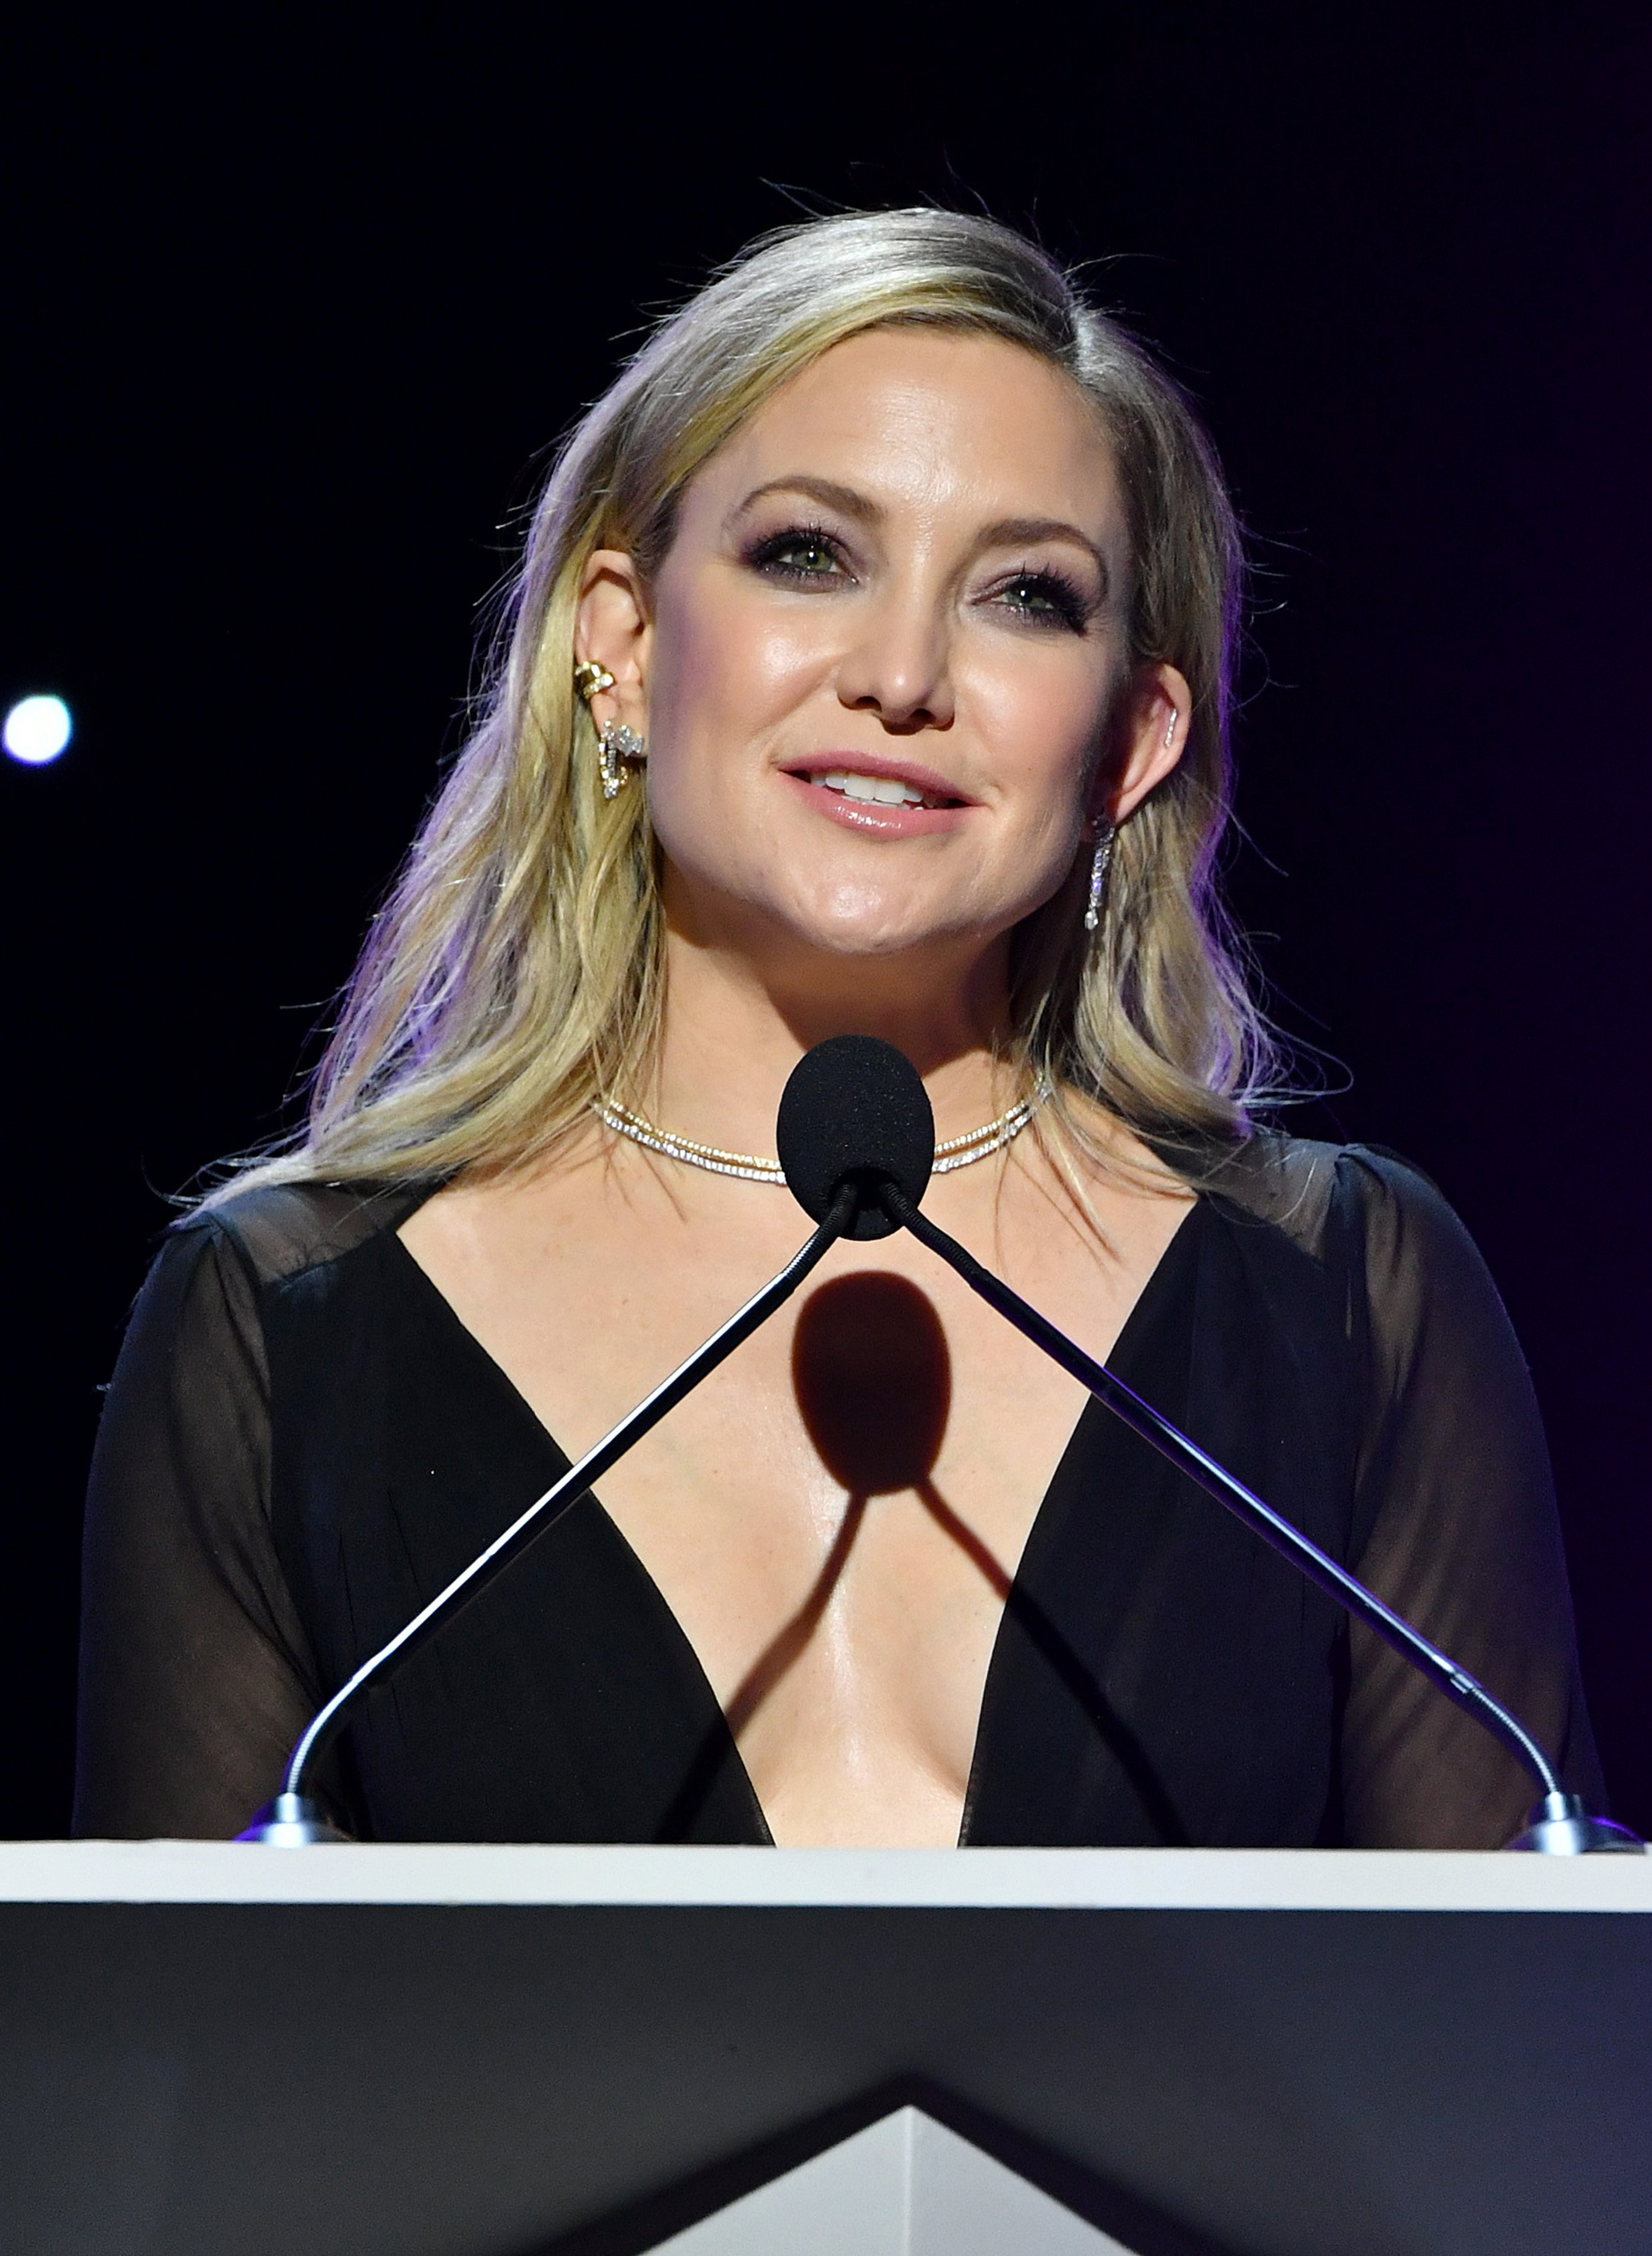 Kate Hudson onstage during the 2020 Writers Guild Awards West Coast Ceremony at The Beverly Hilton Hotel on February 01, 2020 in Beverly Hills, California   Source: Getty Images